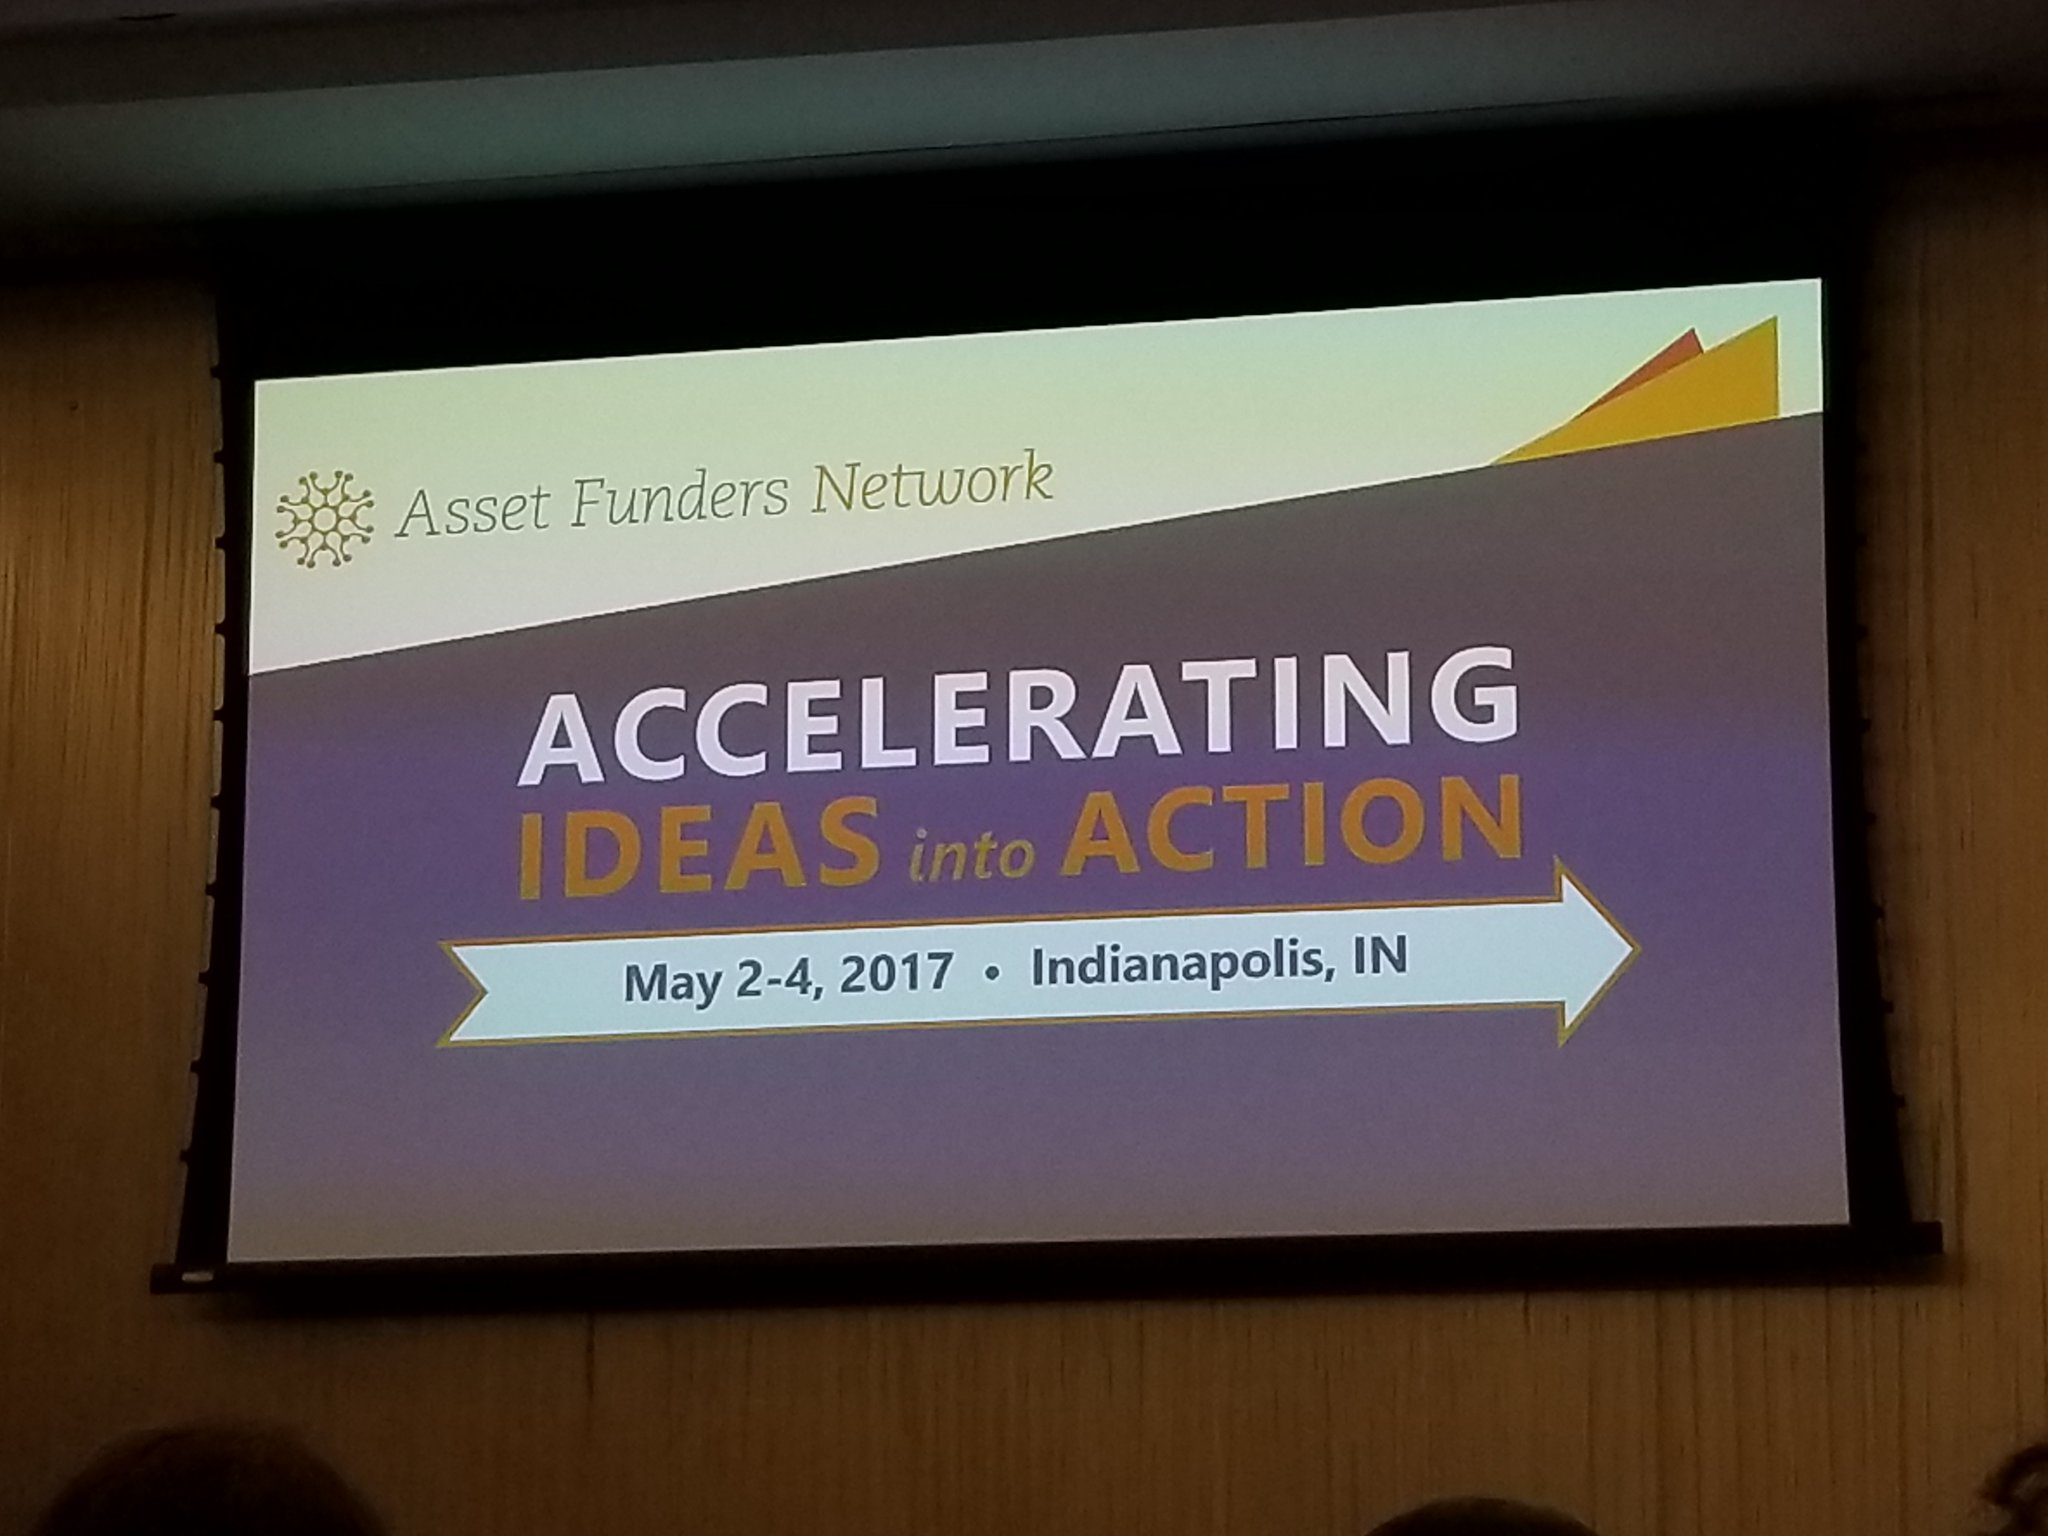 Such a great conference theme! Let's all make this a life goal! @AssetFunders #ideasintoaction https://t.co/YTVnEWygz4